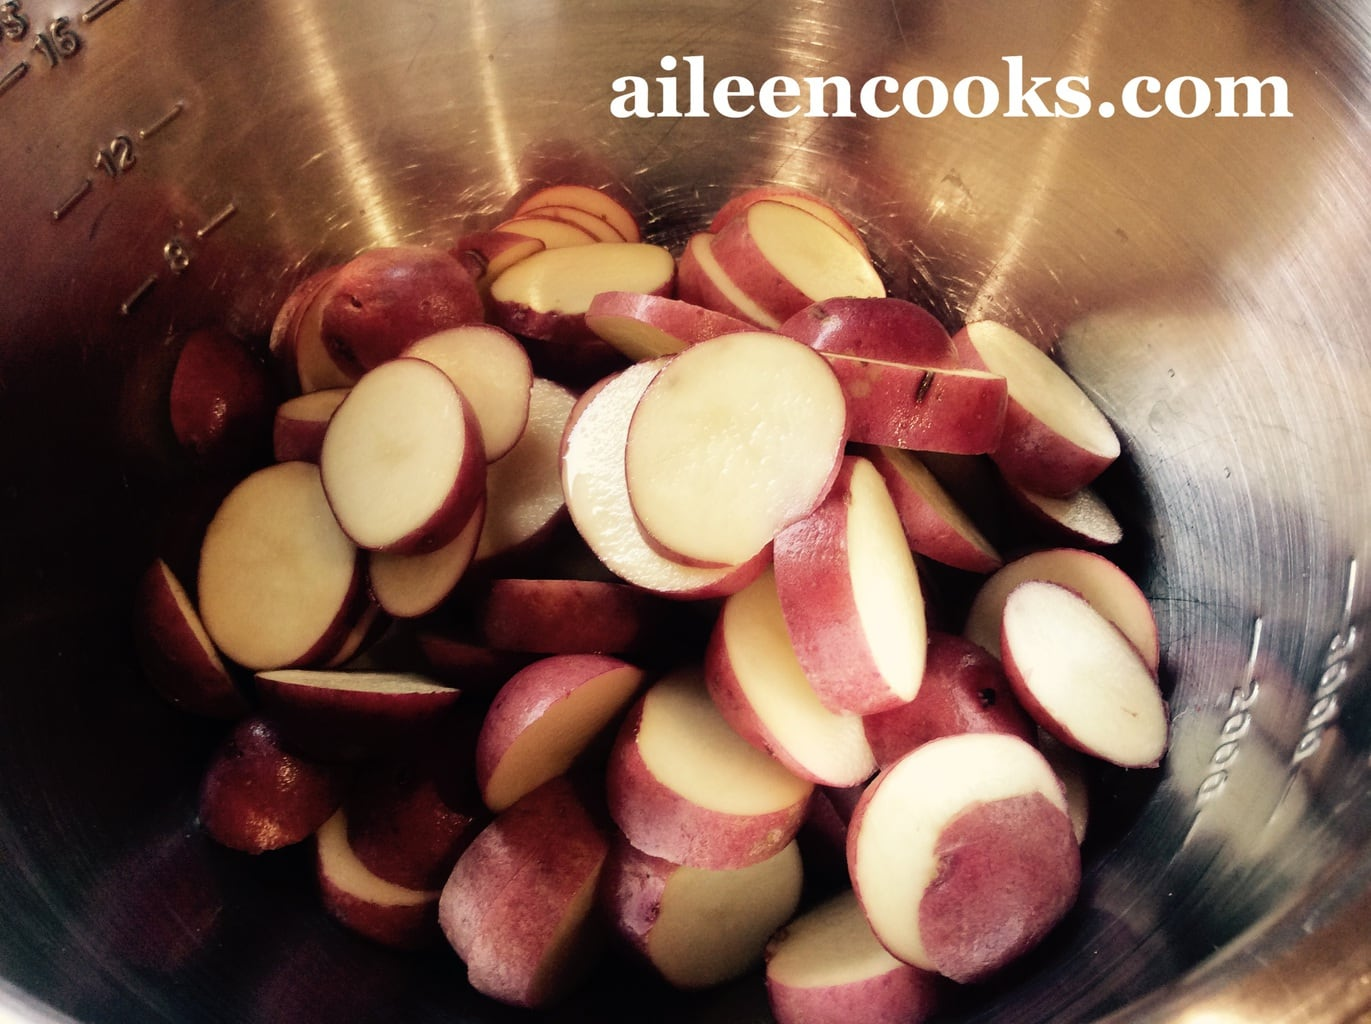 A metal mixing bowl filled with small red potatoes sliced 1/2 inch thick.